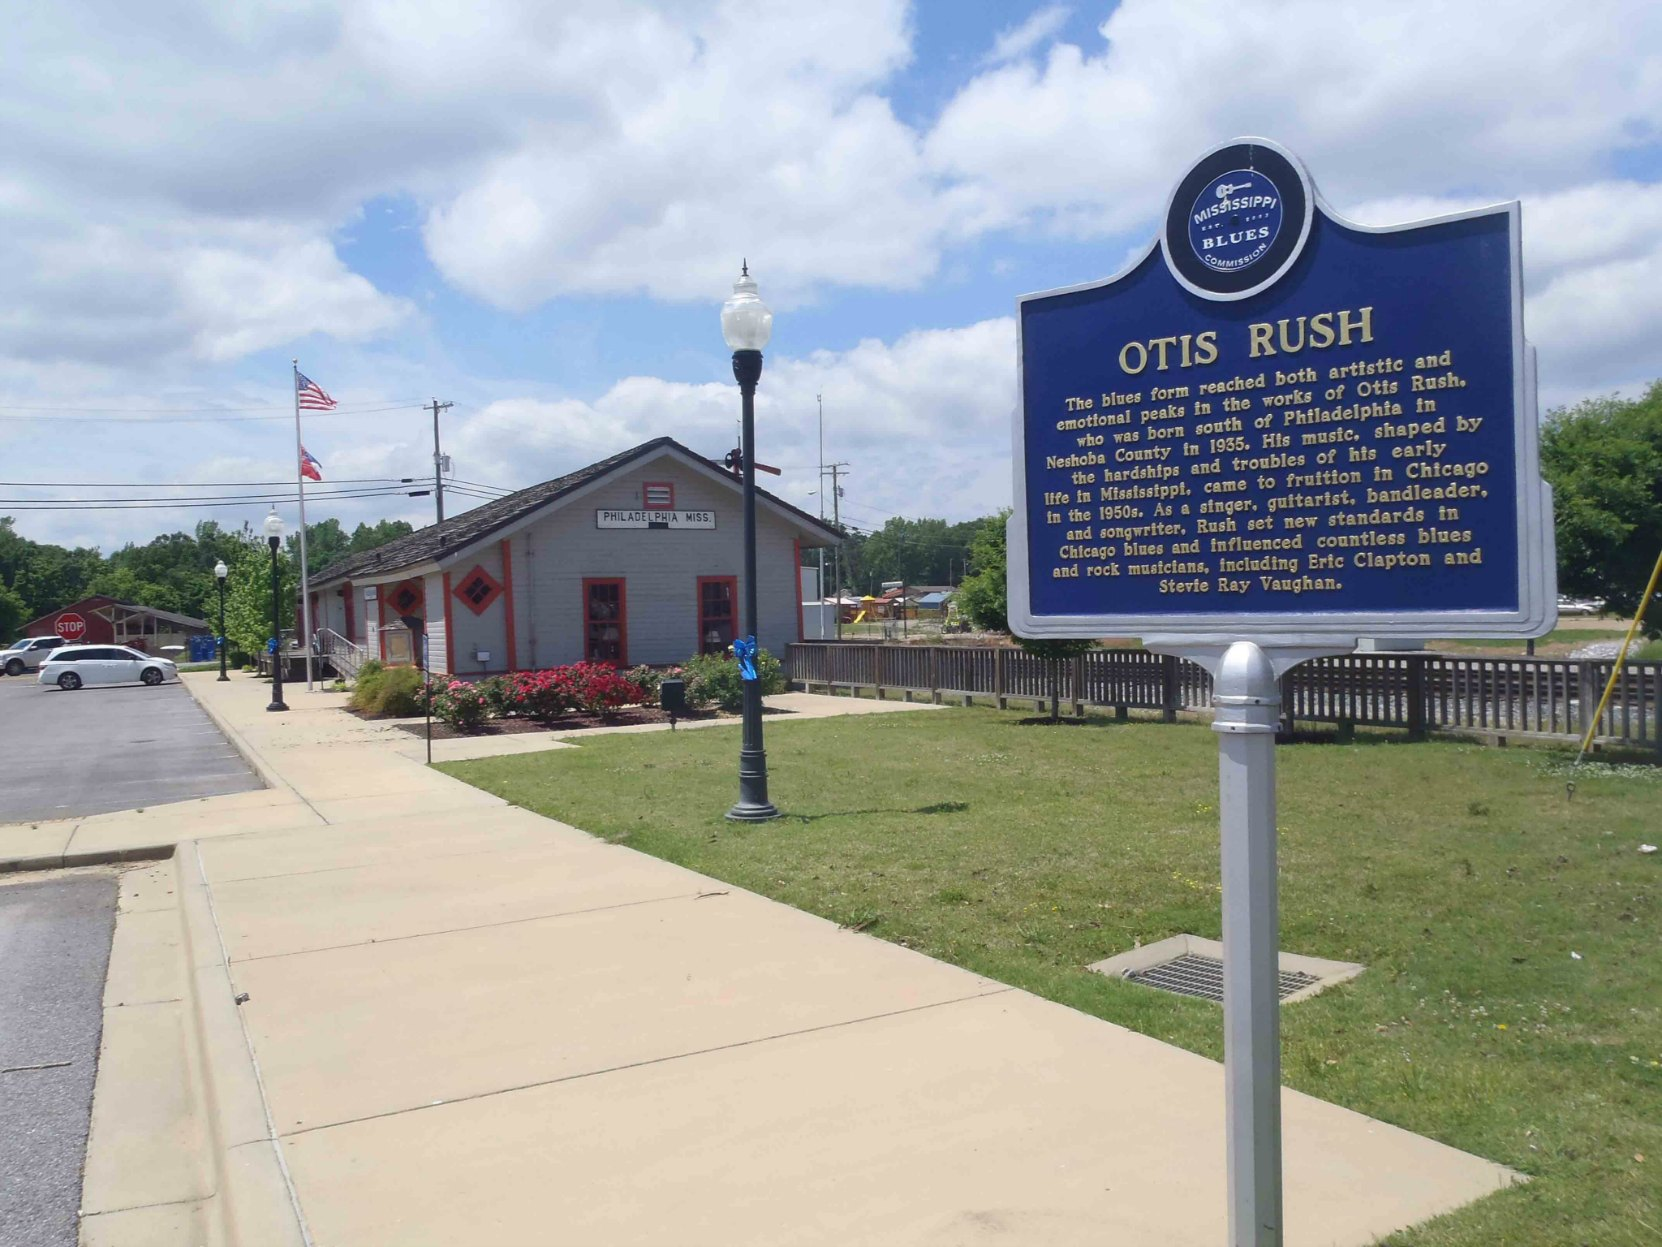 Mississippi Blues Trail marker for Otis Rush, Philadelphia, Neshoba County, Mississippi